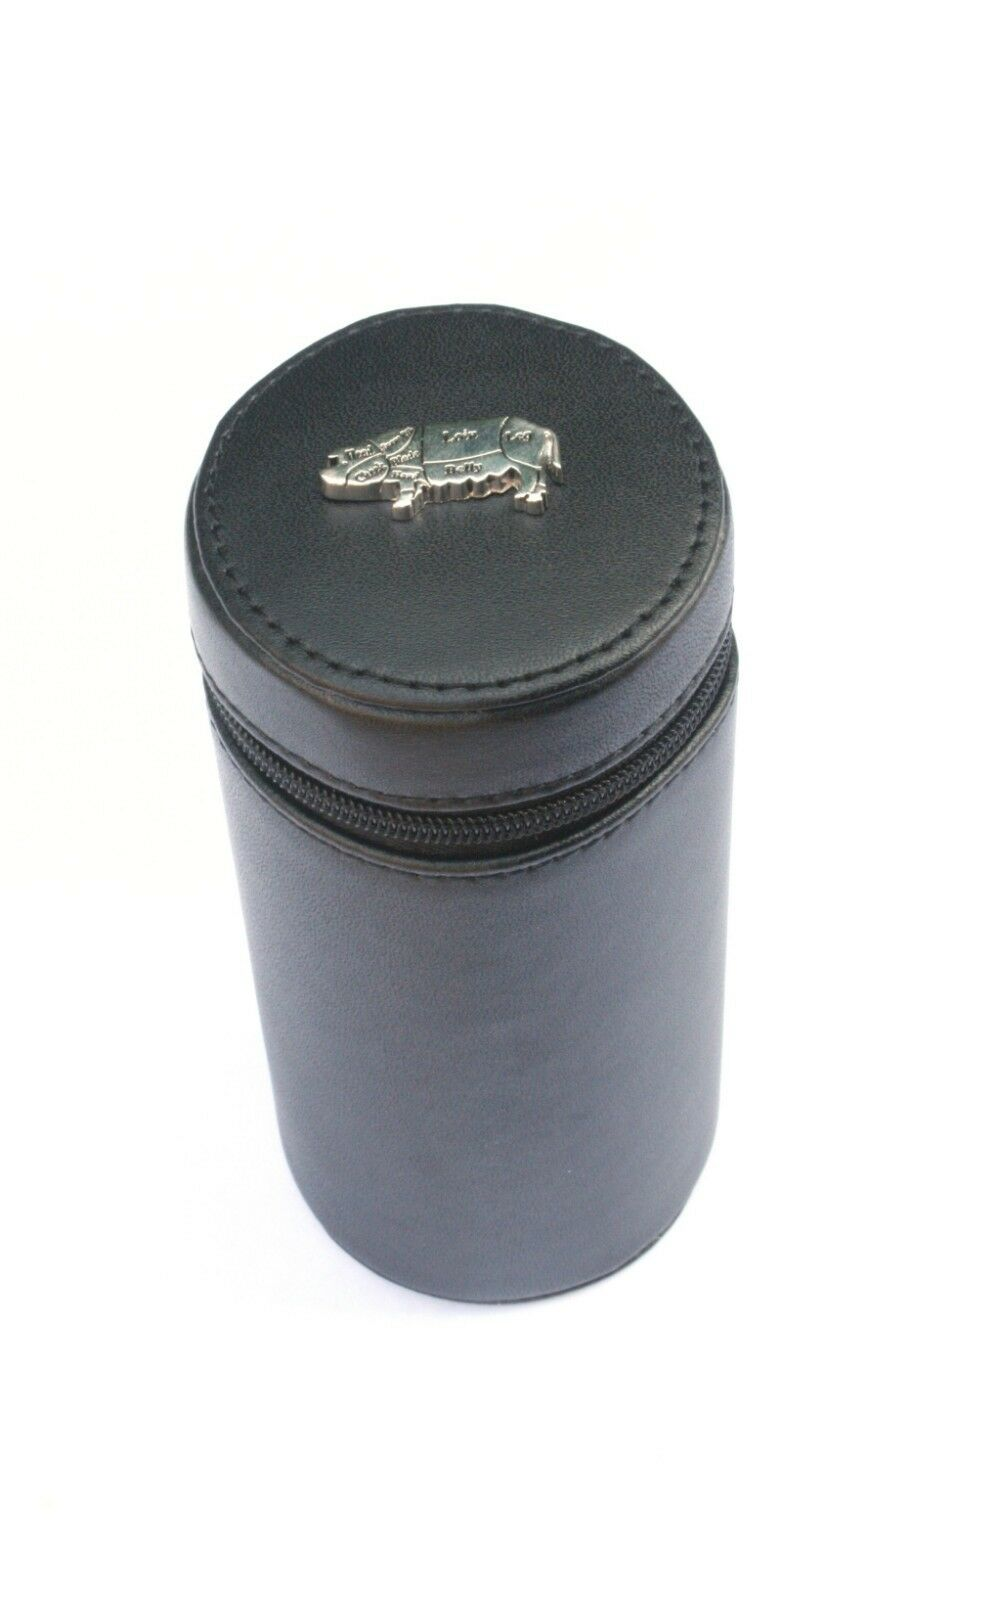 Butcher Pig Shooting Peg Position Finder Numberojo Cups 1-10 negro Leather Case